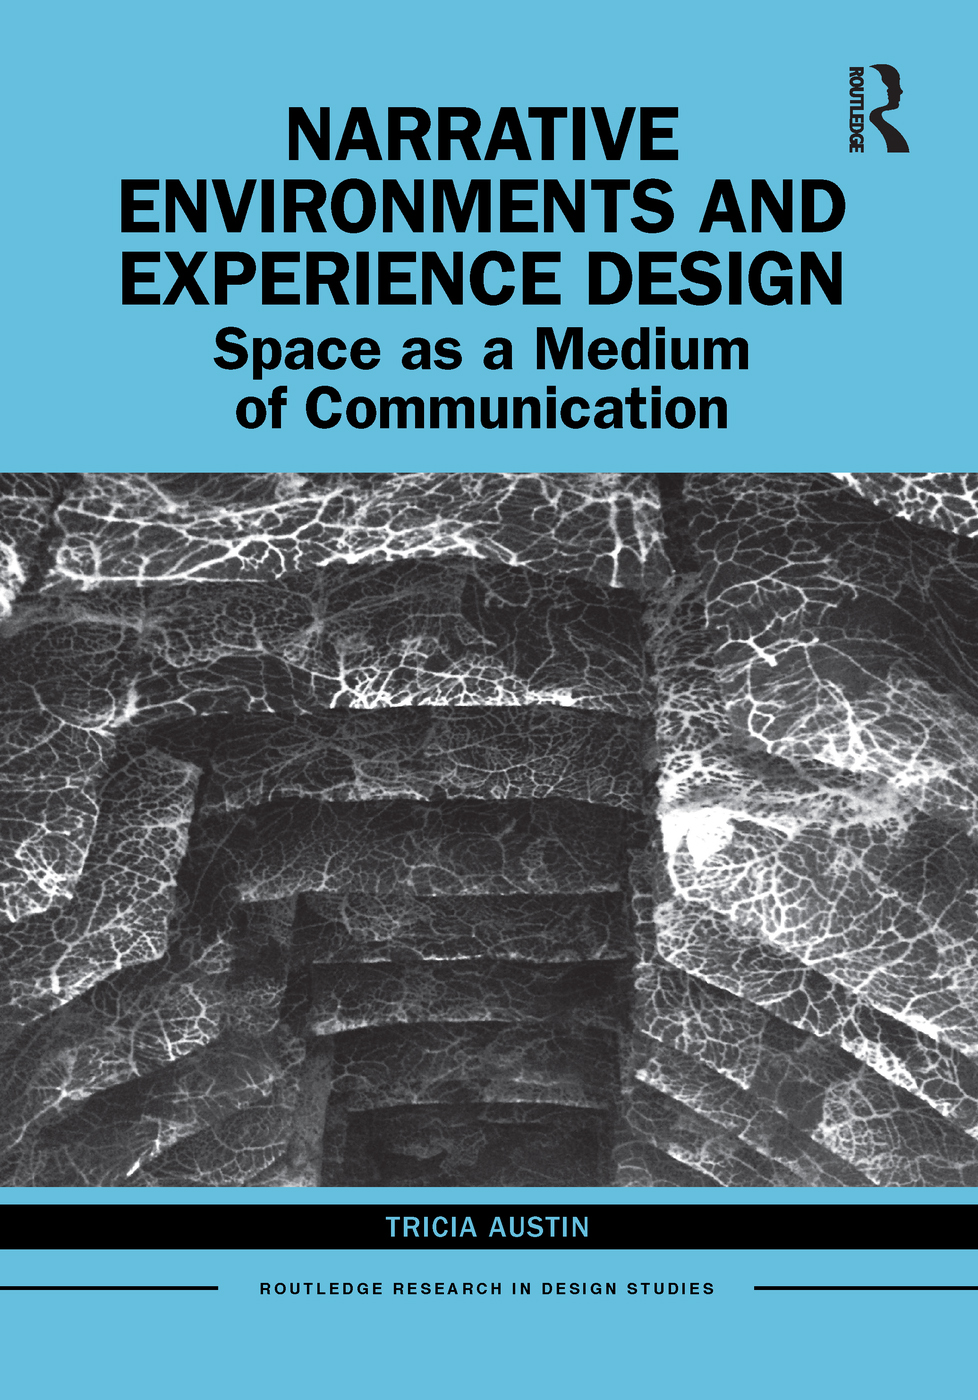 Narrative Environments and Experience Design: Space as a Medium of Communication book cover